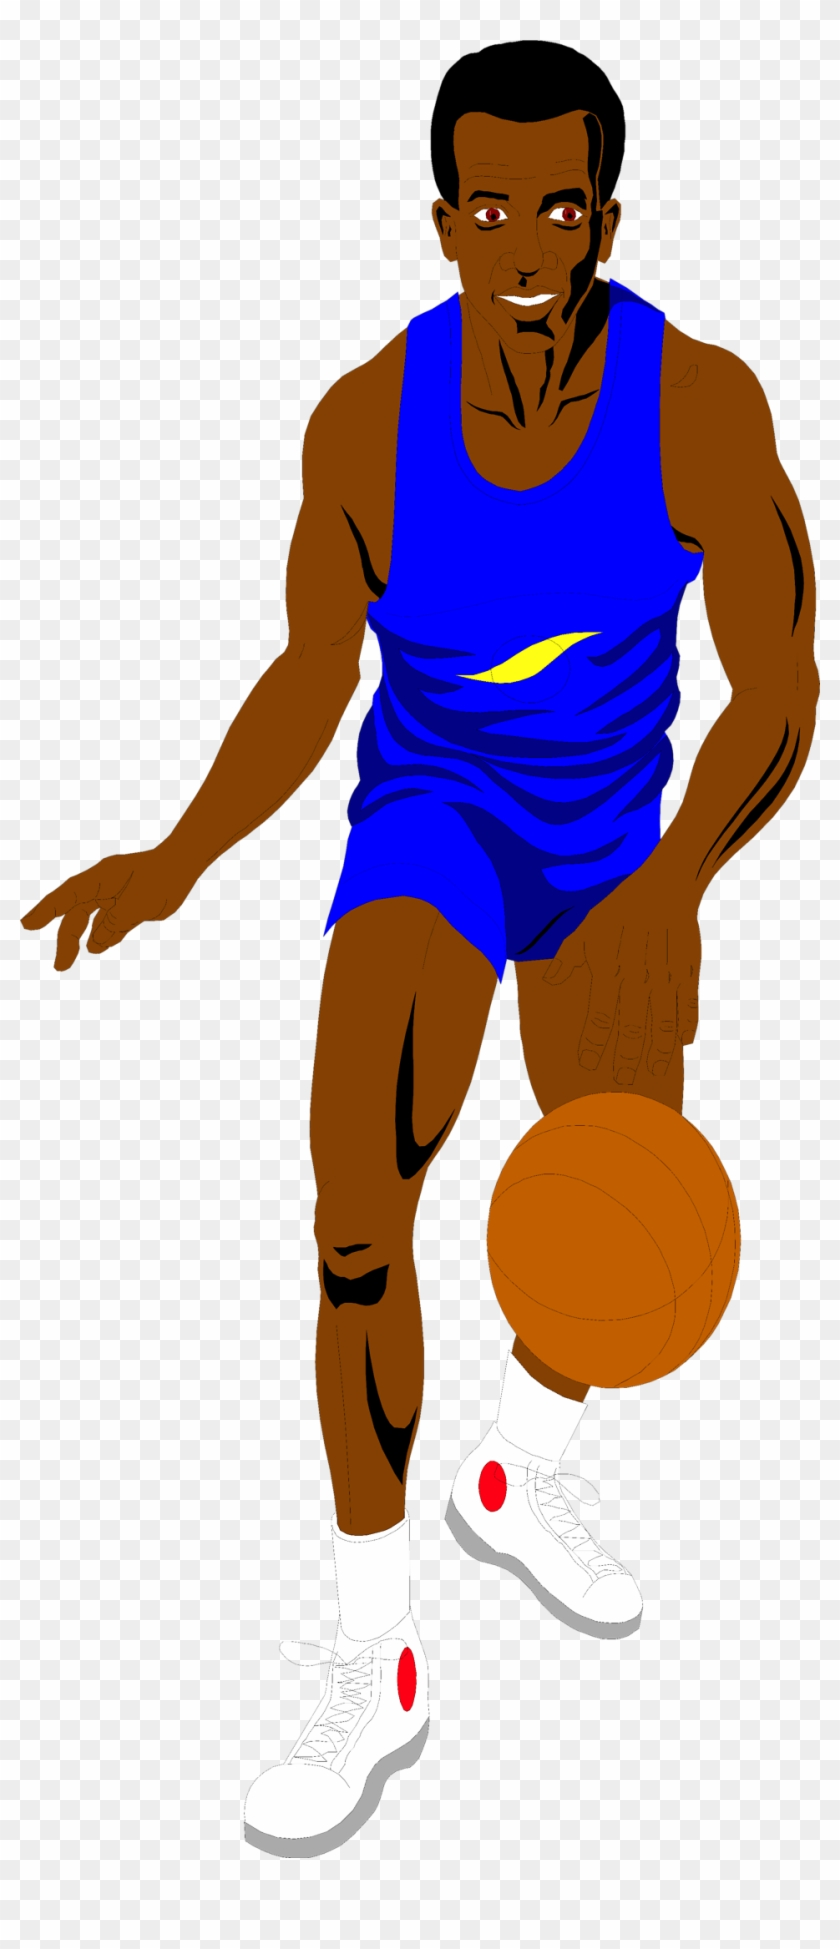 Basketball - Dunking - Basketball Player Clipart Transparent Background #255588